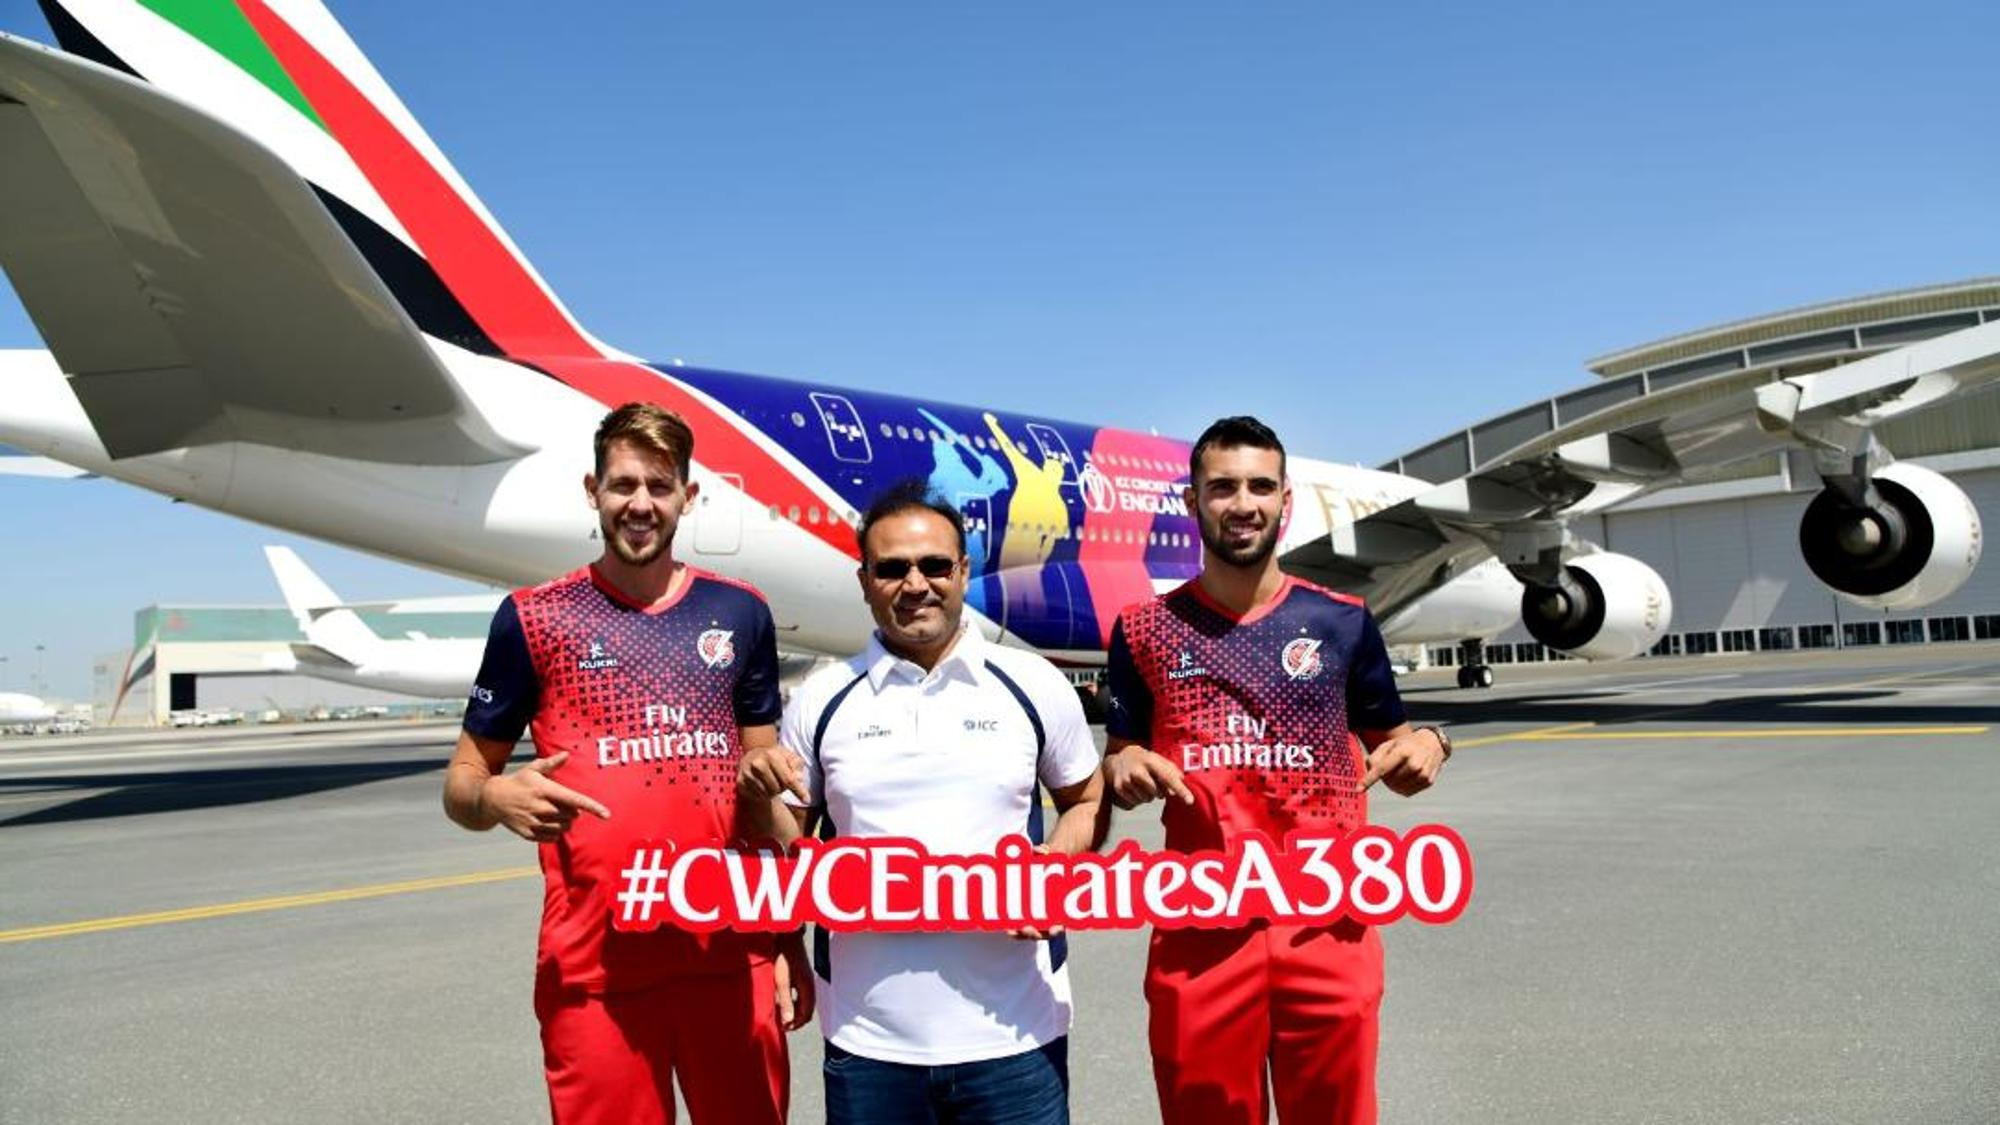 Virender Sehwag launches the CWC19 Emirates A380!